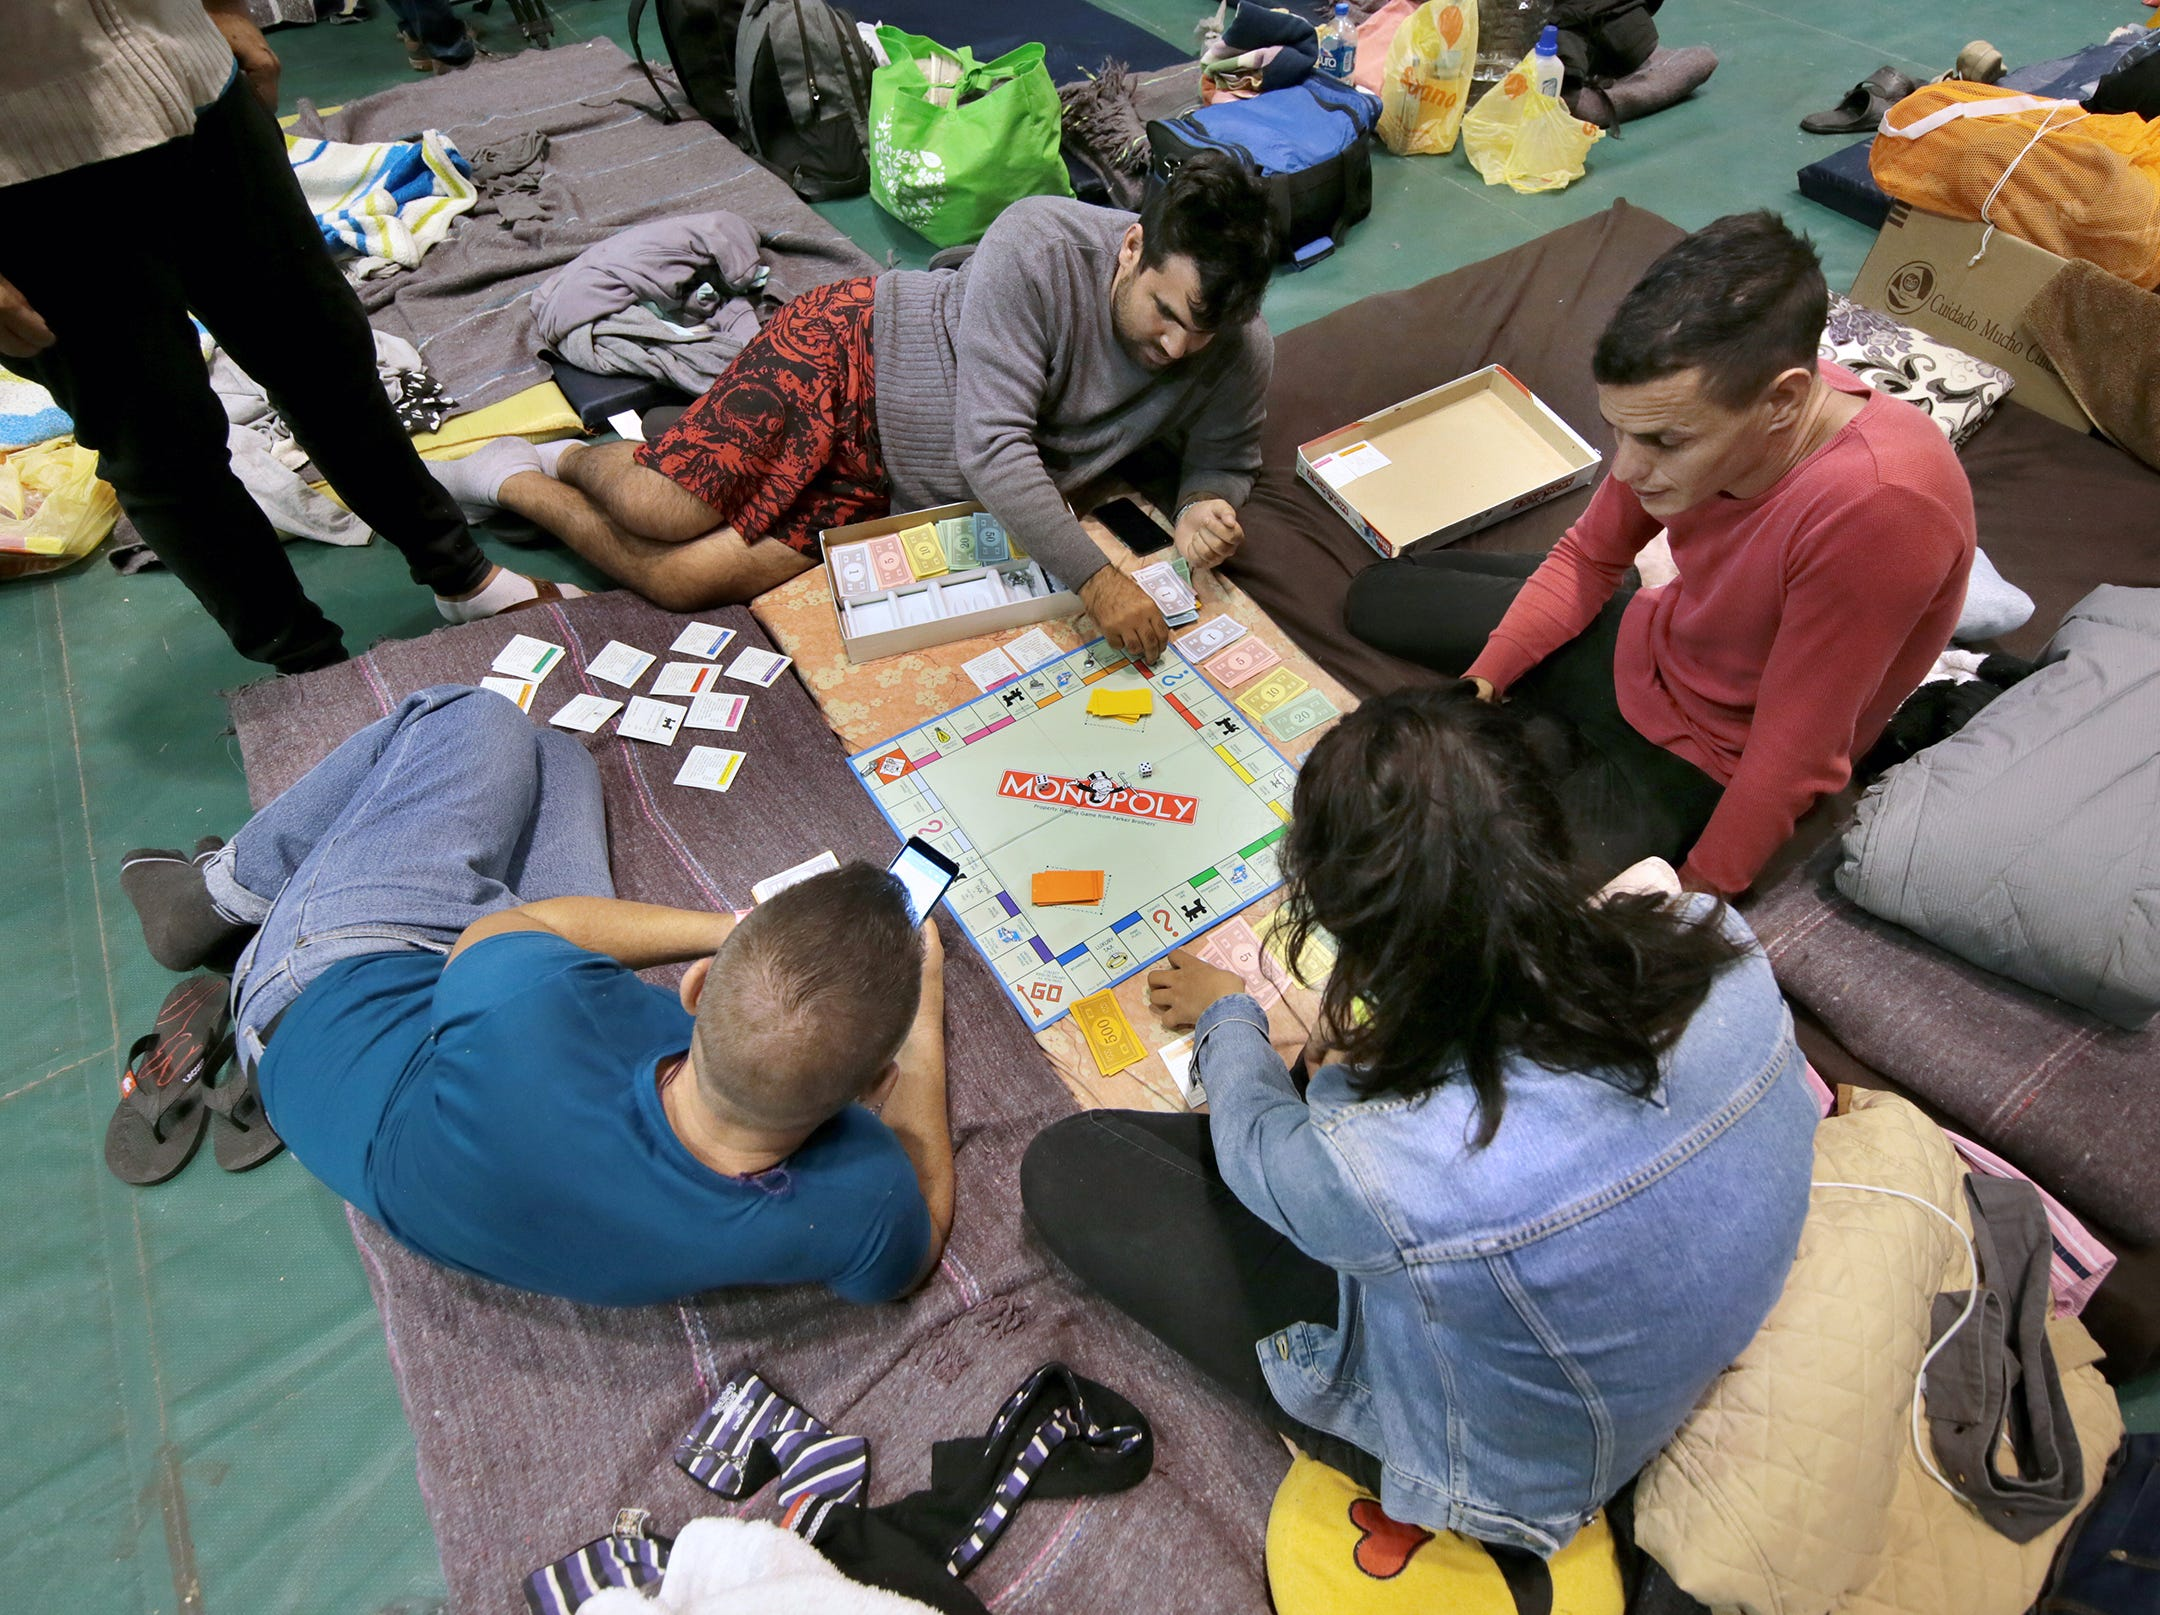 Cuban migrants play Monopoly on Thursday, March 7, 2019, at a shelter in Juárez.